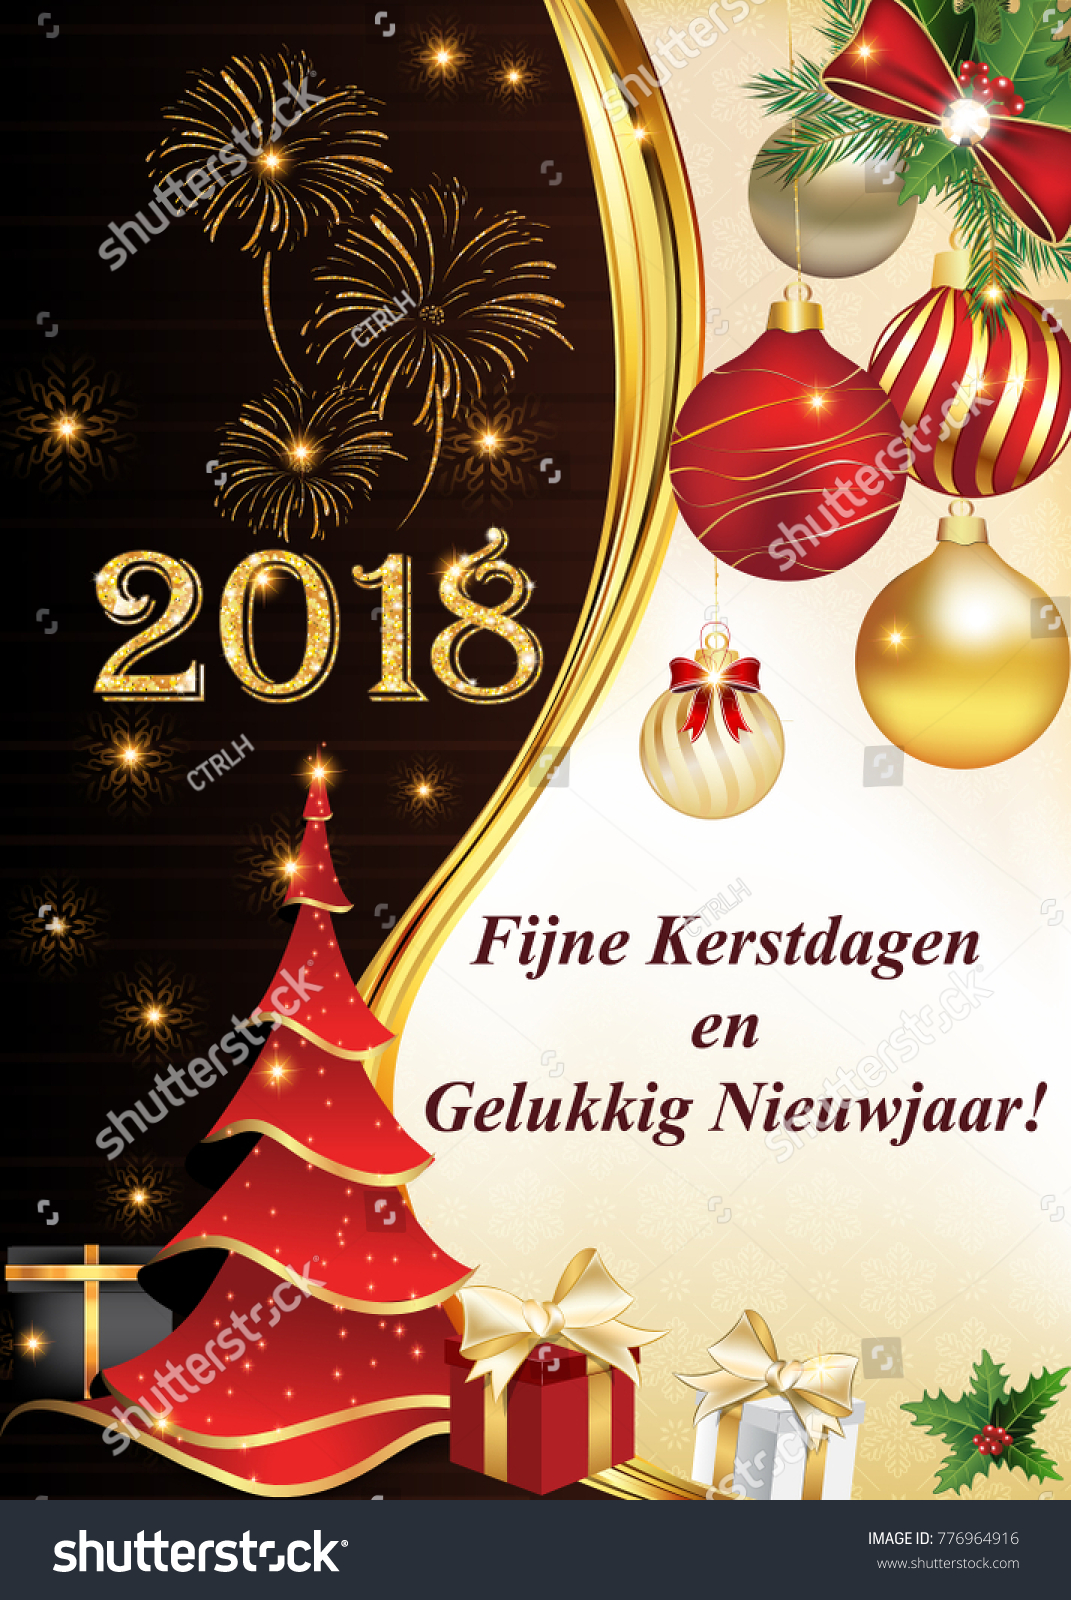 2018 We Wish You A Merry Christmas And A Happy New Year Corporate